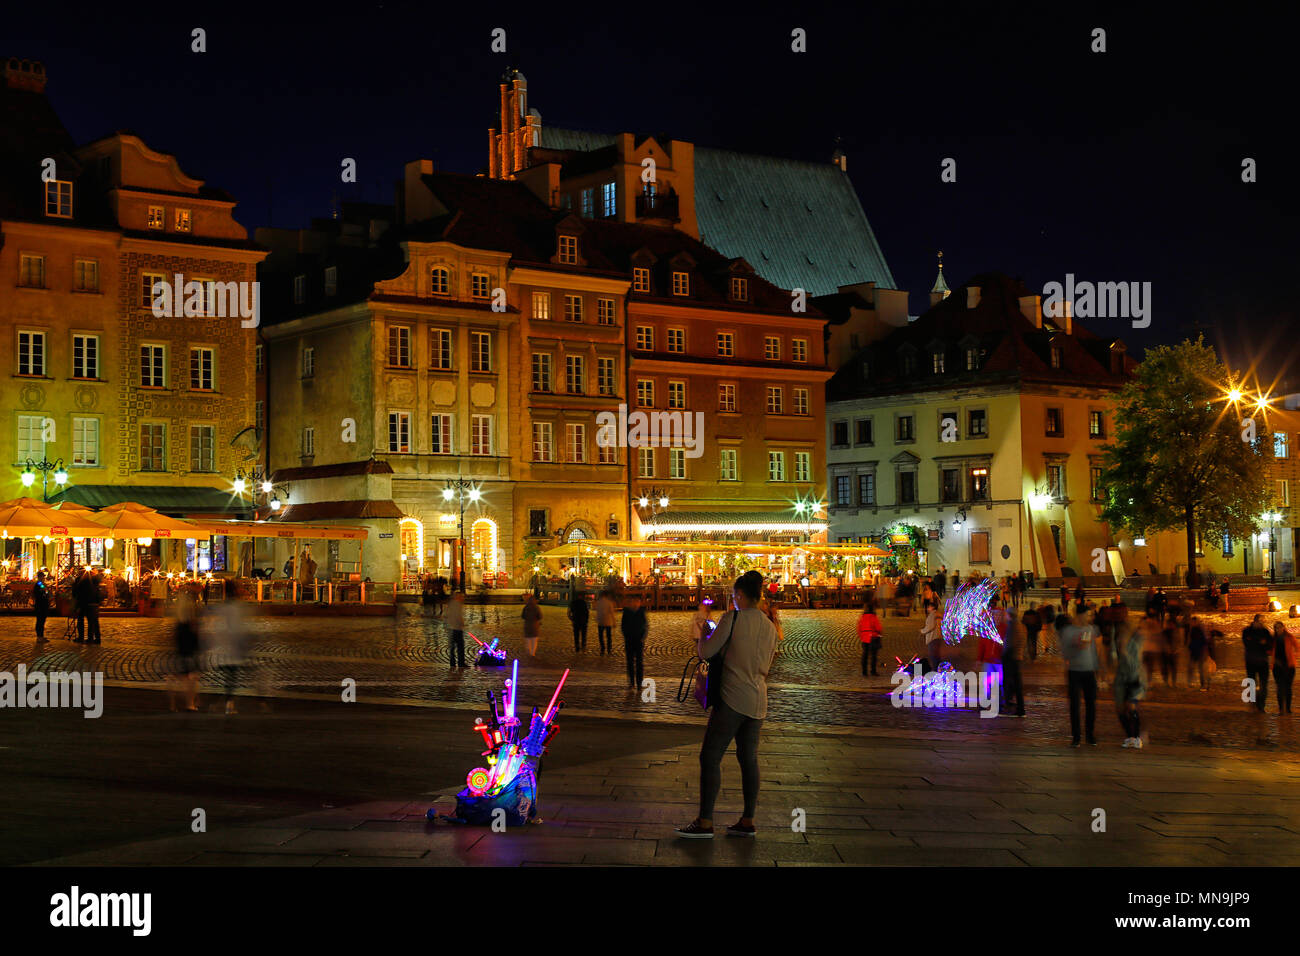 The castle square in Warsaw is visited by tourists at any time of the day. - Stock Image